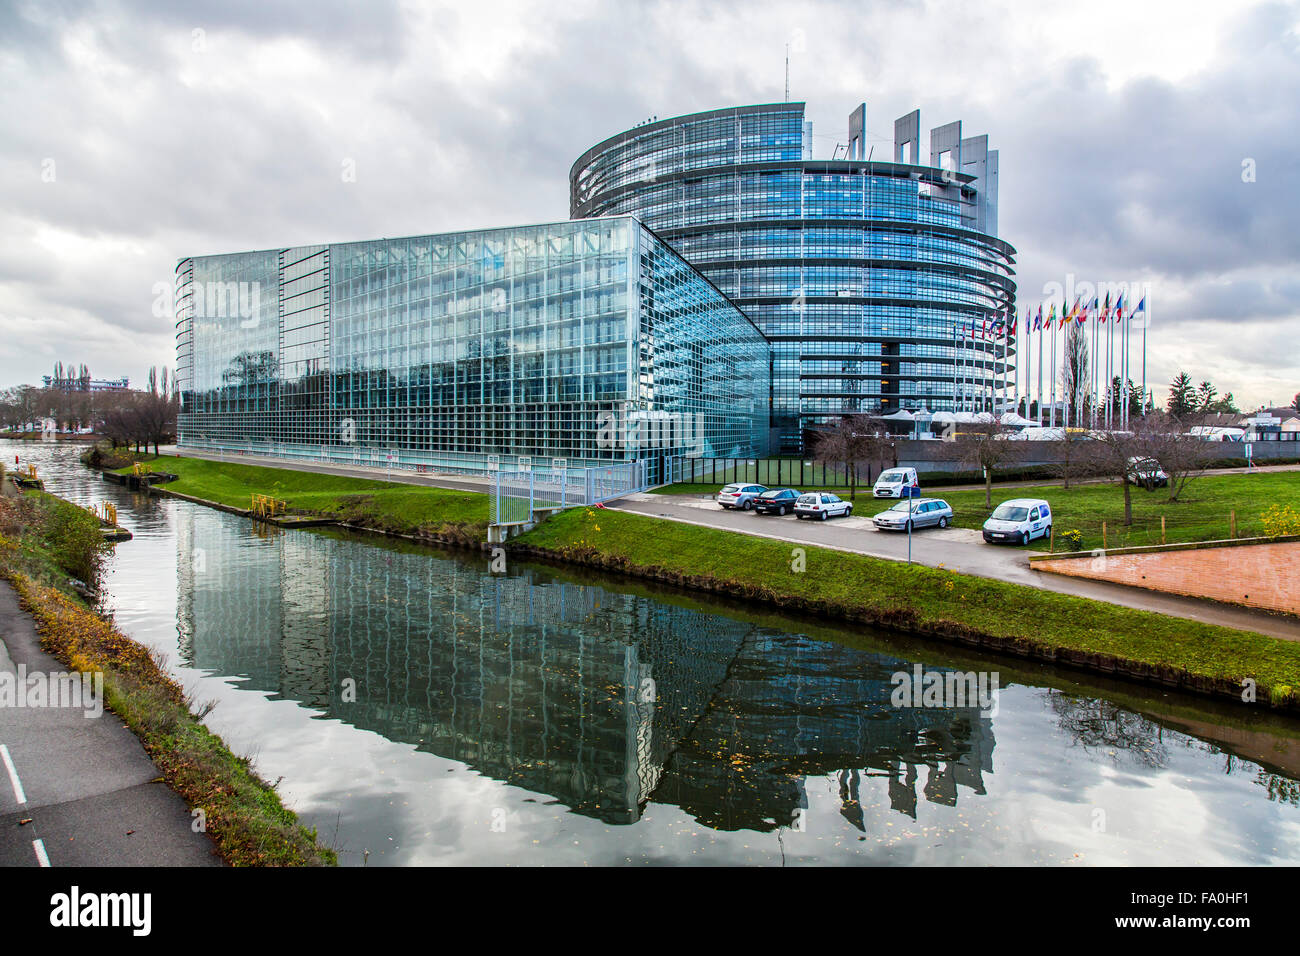 Building of the European Parliament in Strasbourg, Alsace, France, - Stock Image